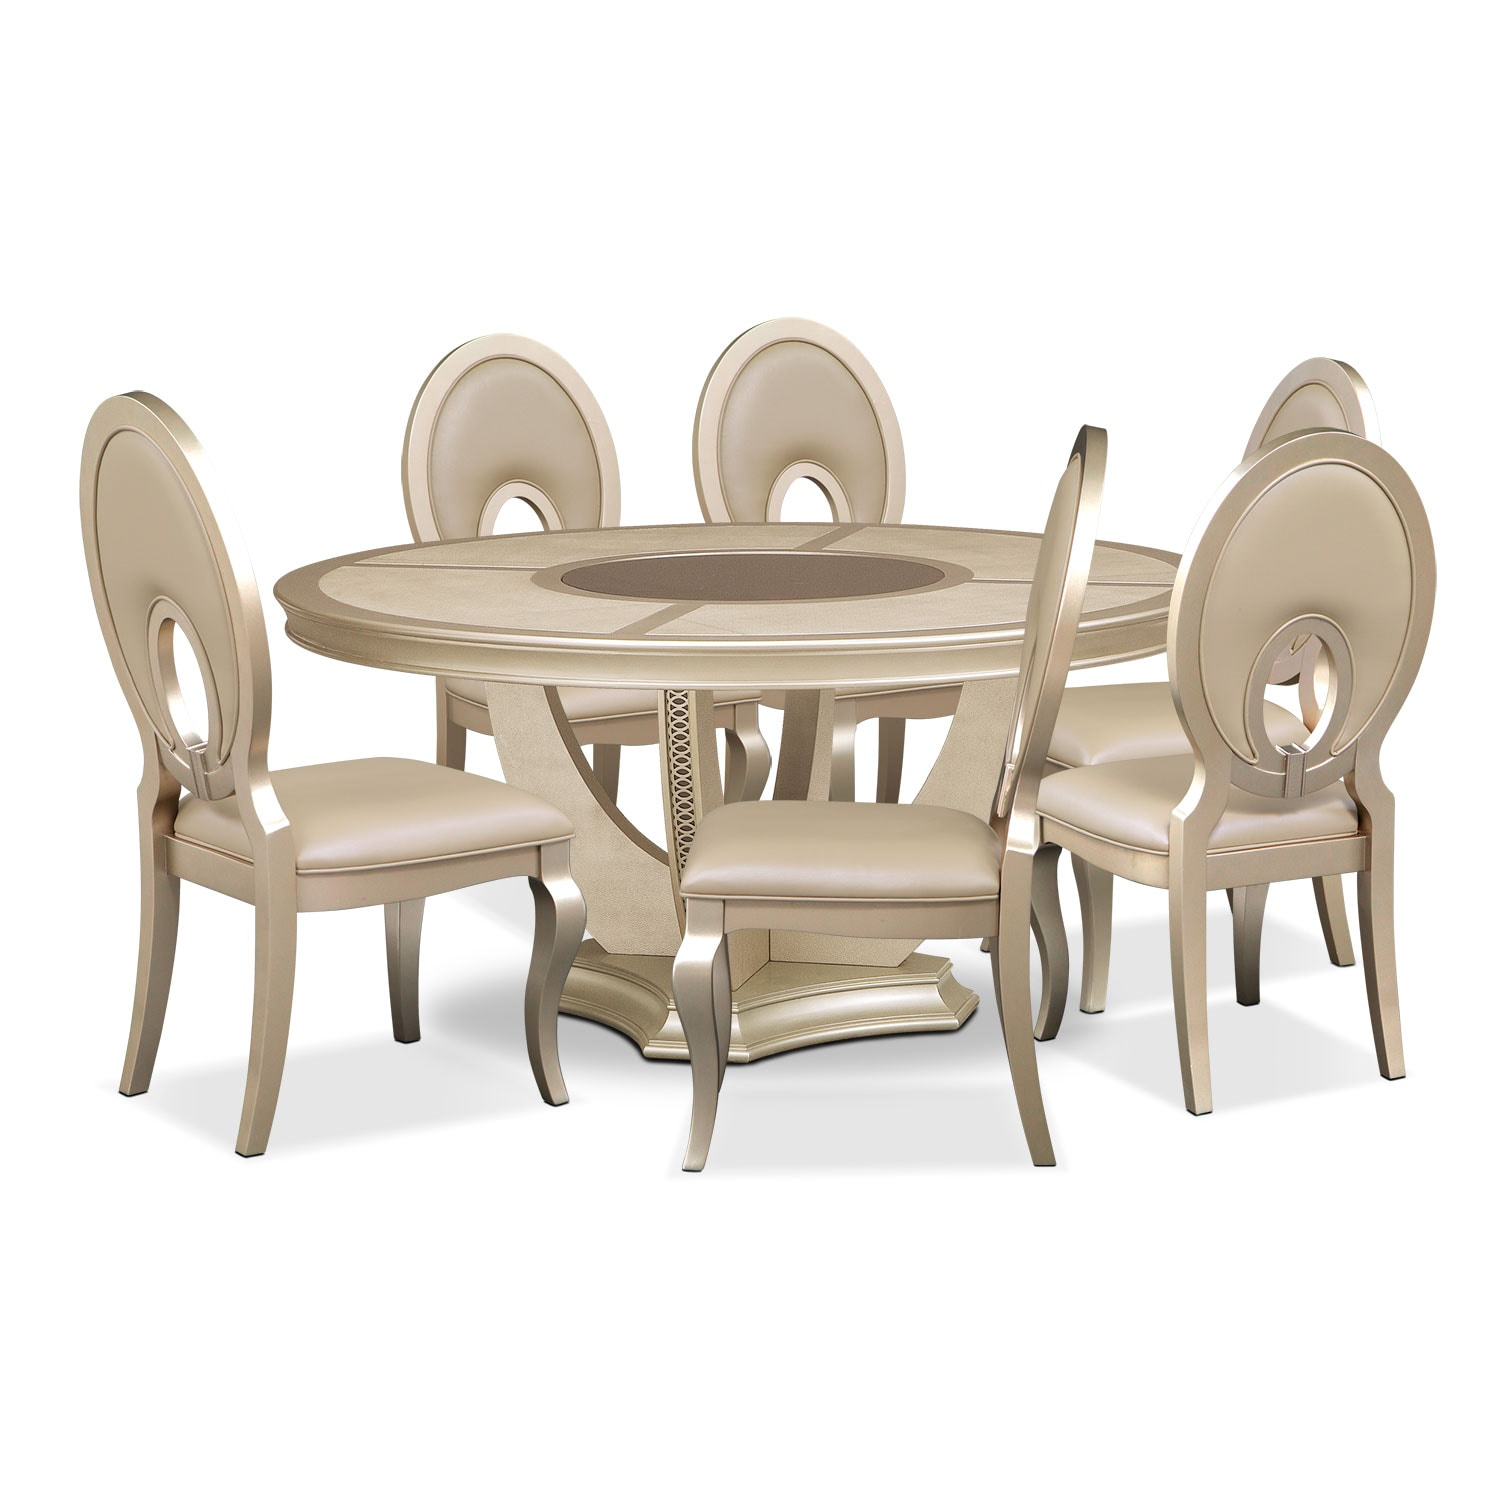 Dining Room Furniture - Allegro 7 Pc. Dining Room - Round